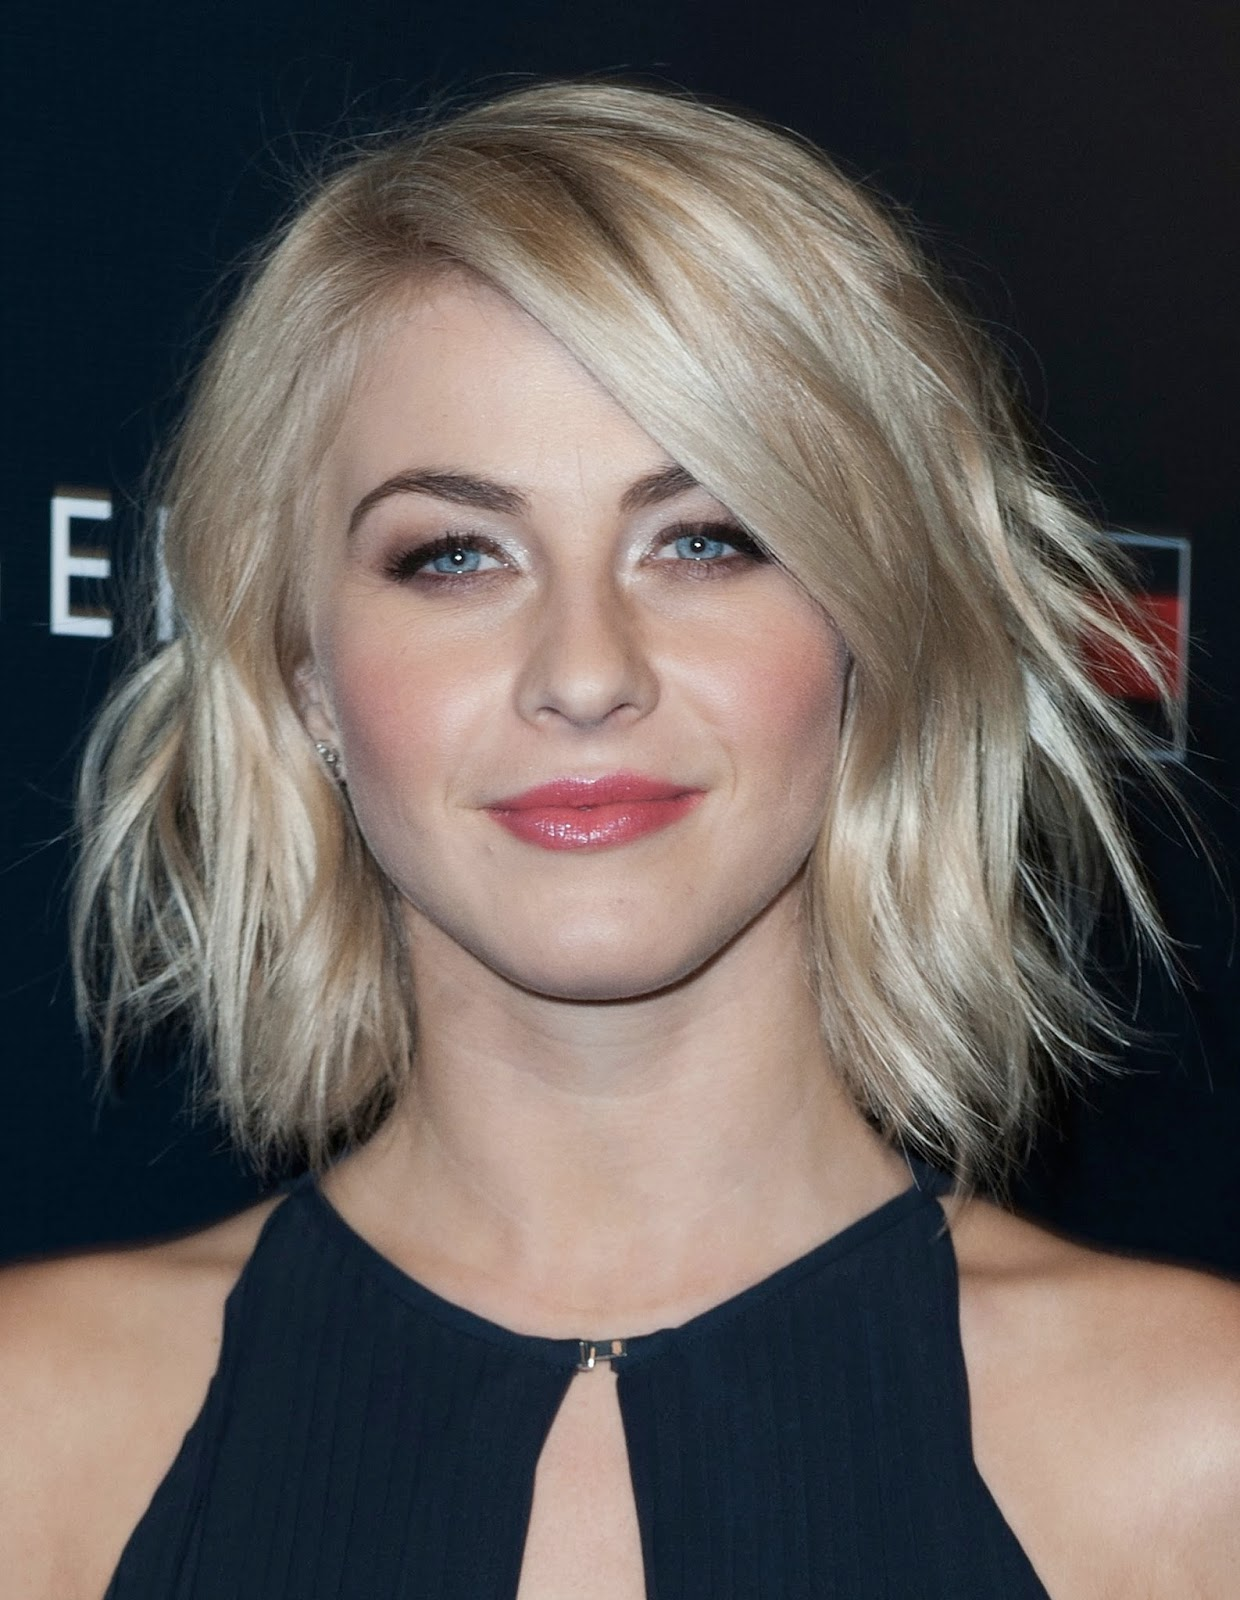 Blonde Celebrity Hairstyles To Try